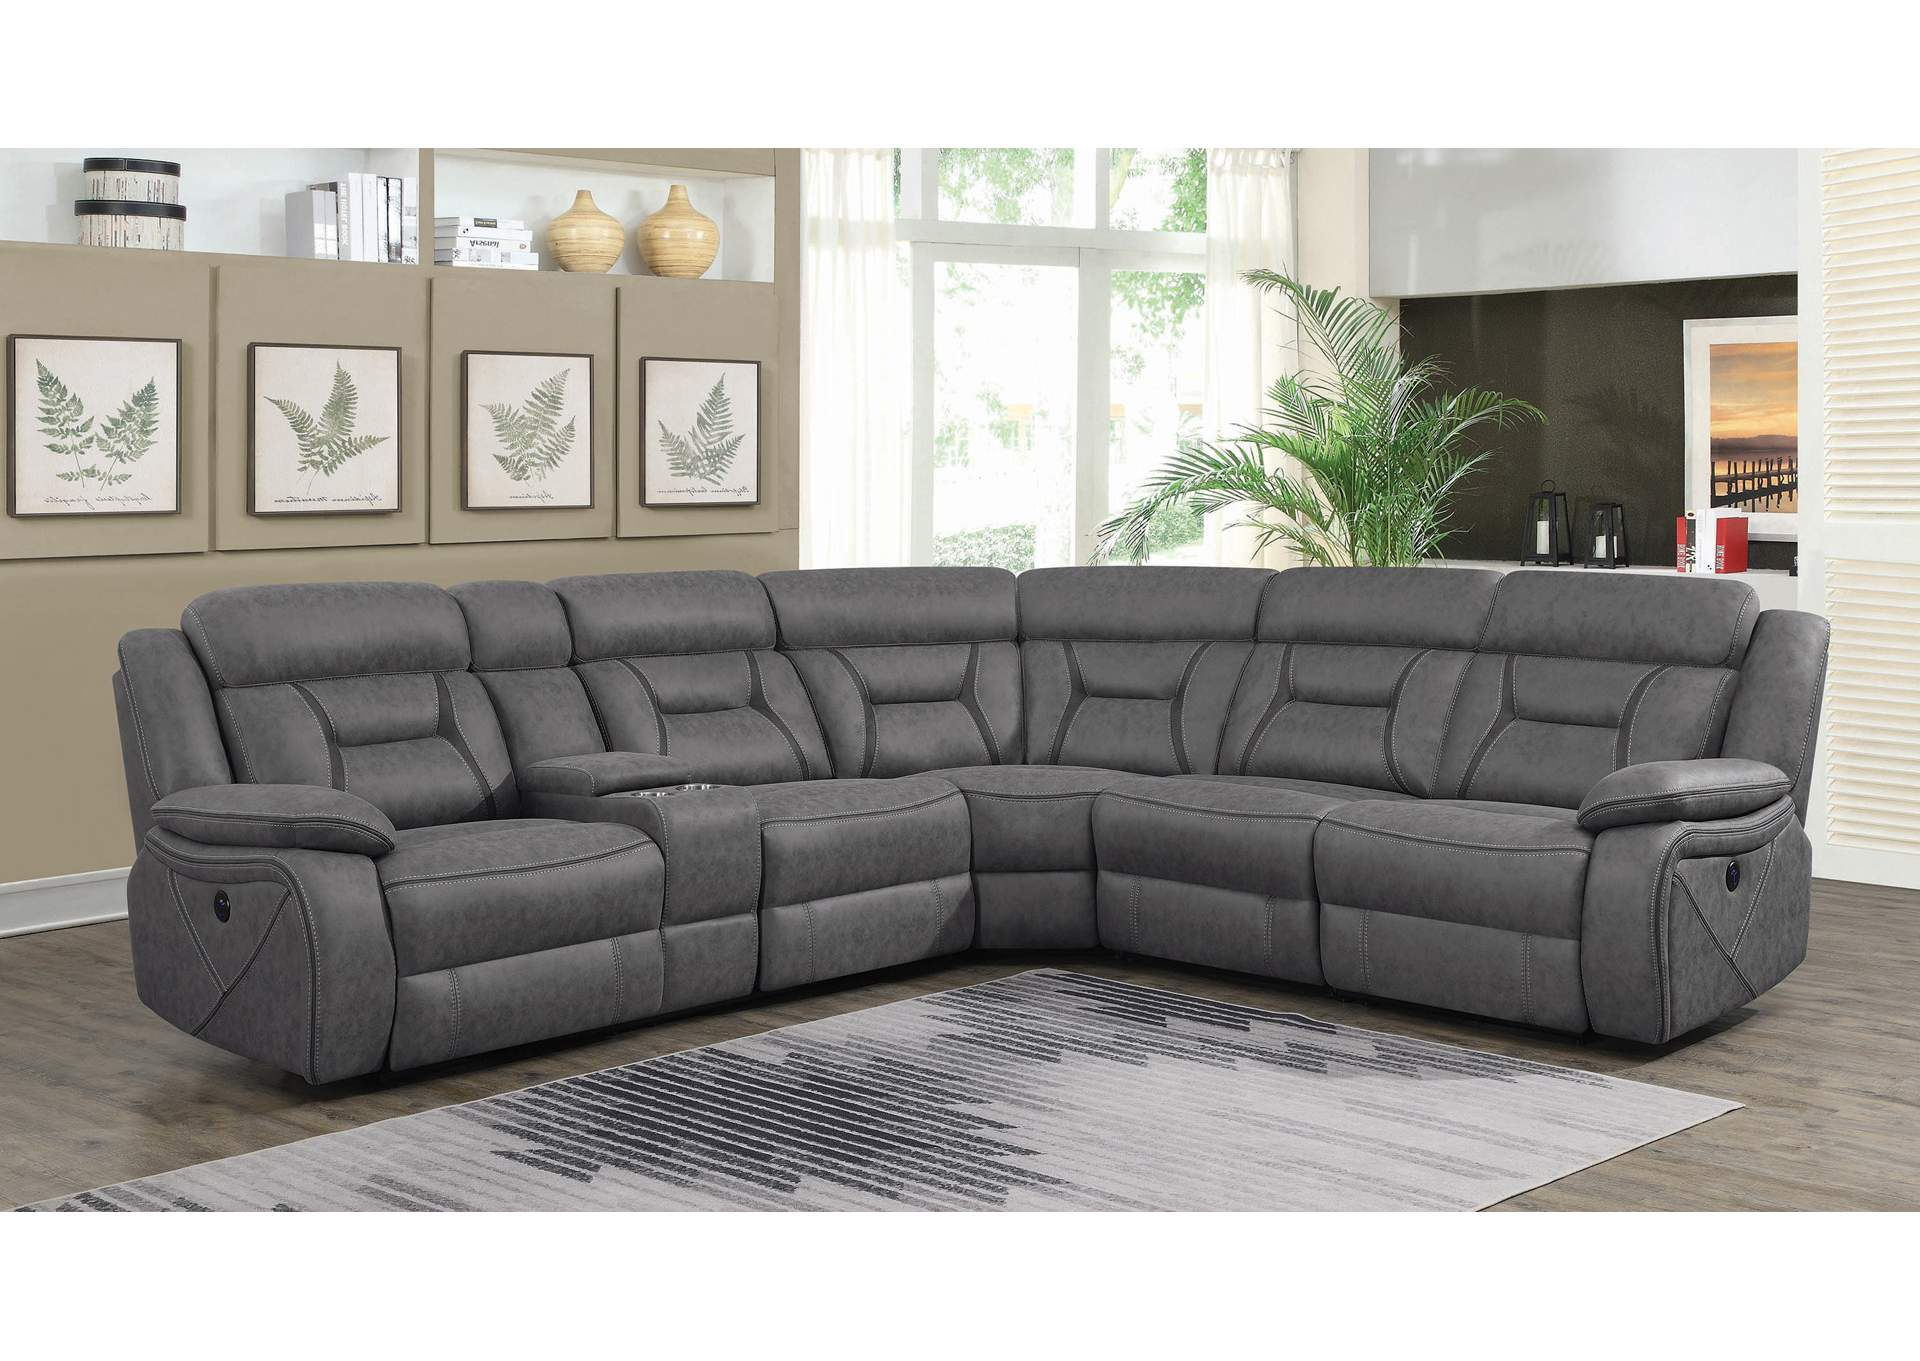 Camargue Grey Reclining Sectional,Coaster Furniture